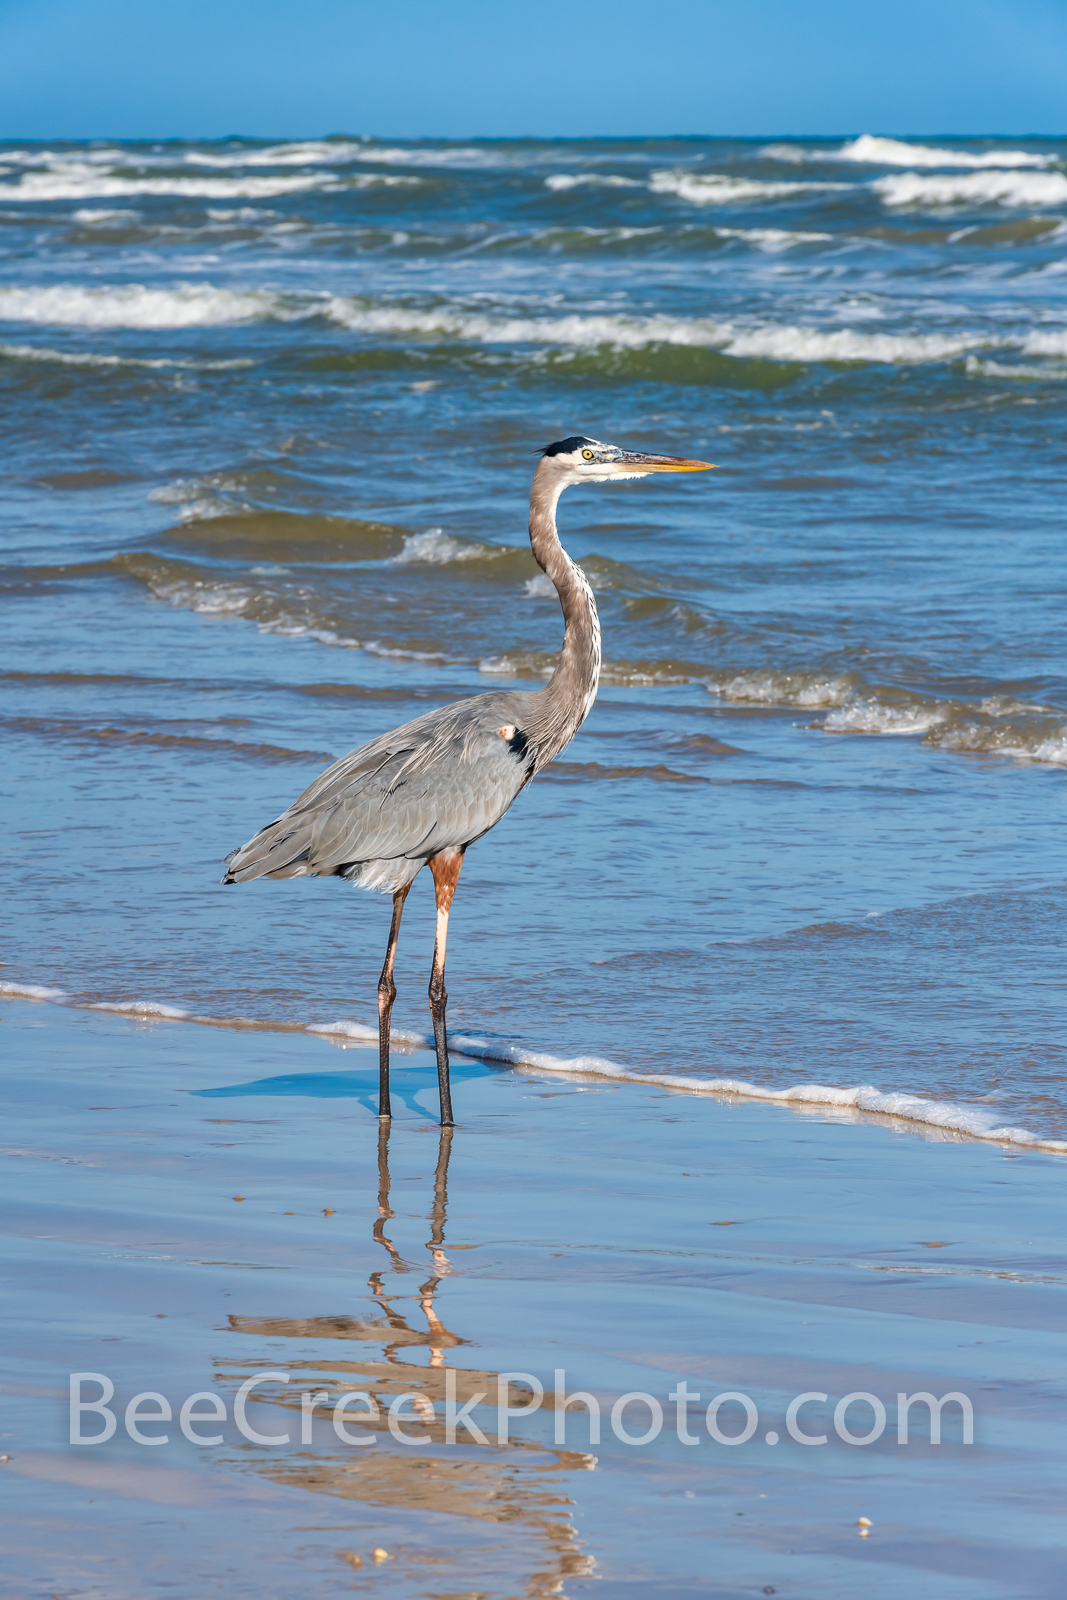 Blue Heron Fishing Gulf of Mexico - We always enjoy a capture at the beach of a blue heron fishing in the surf.  Usually they...